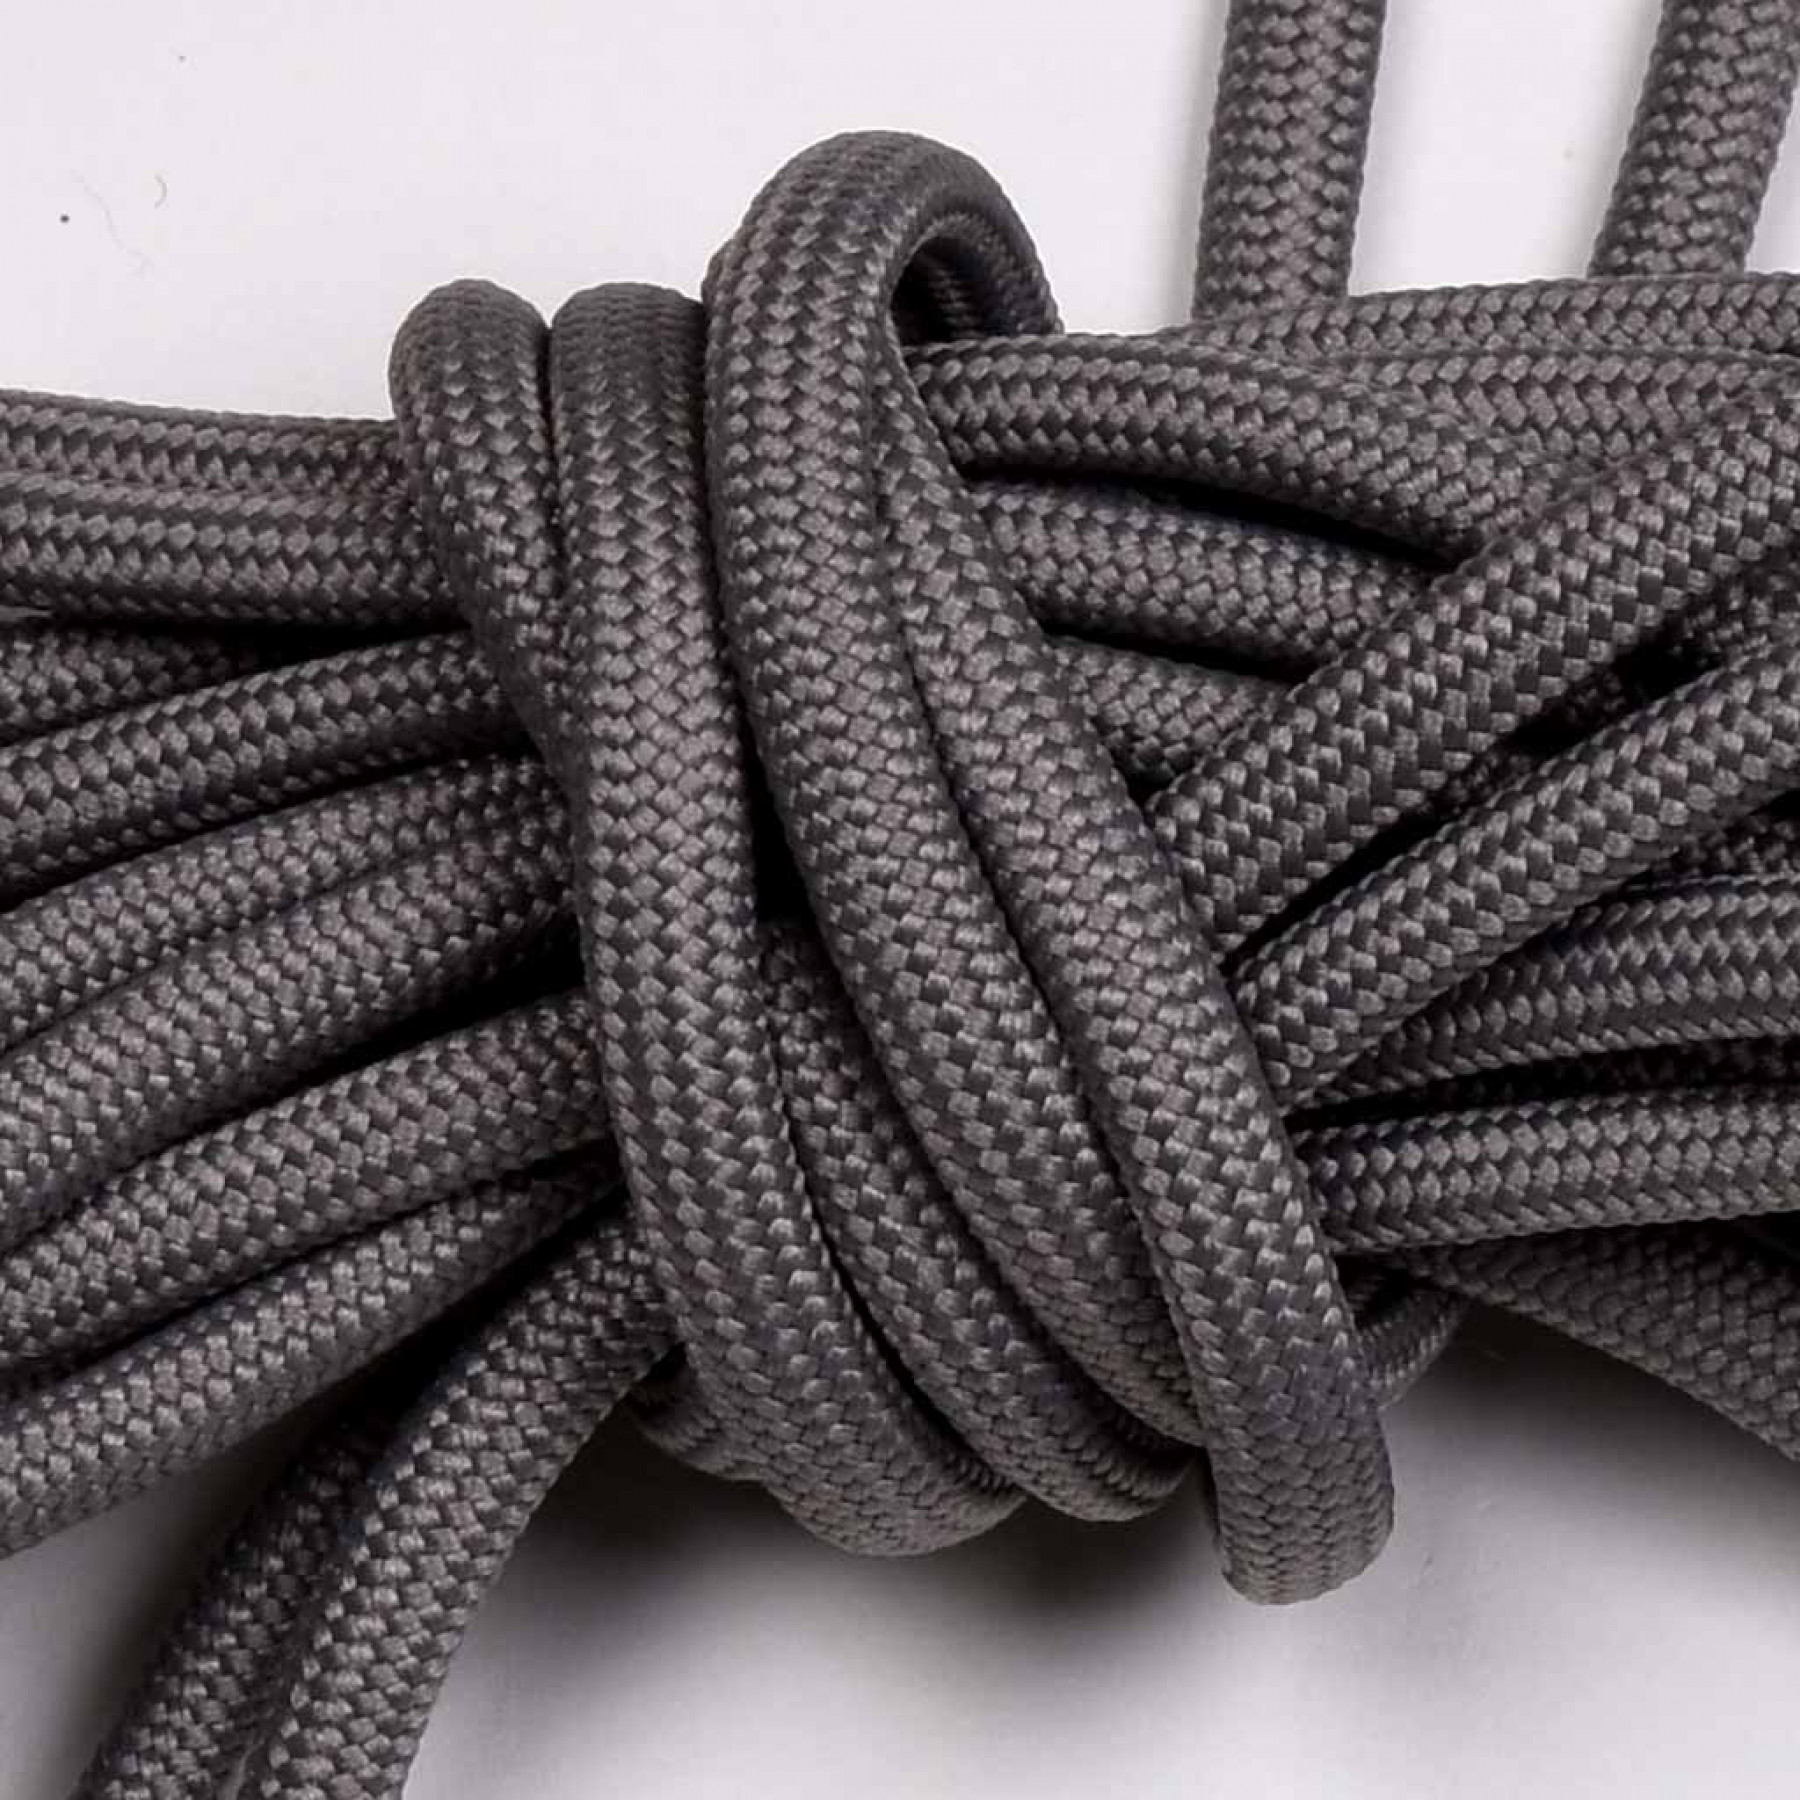 Laces for Biker Boot SE, 230cm long, grey